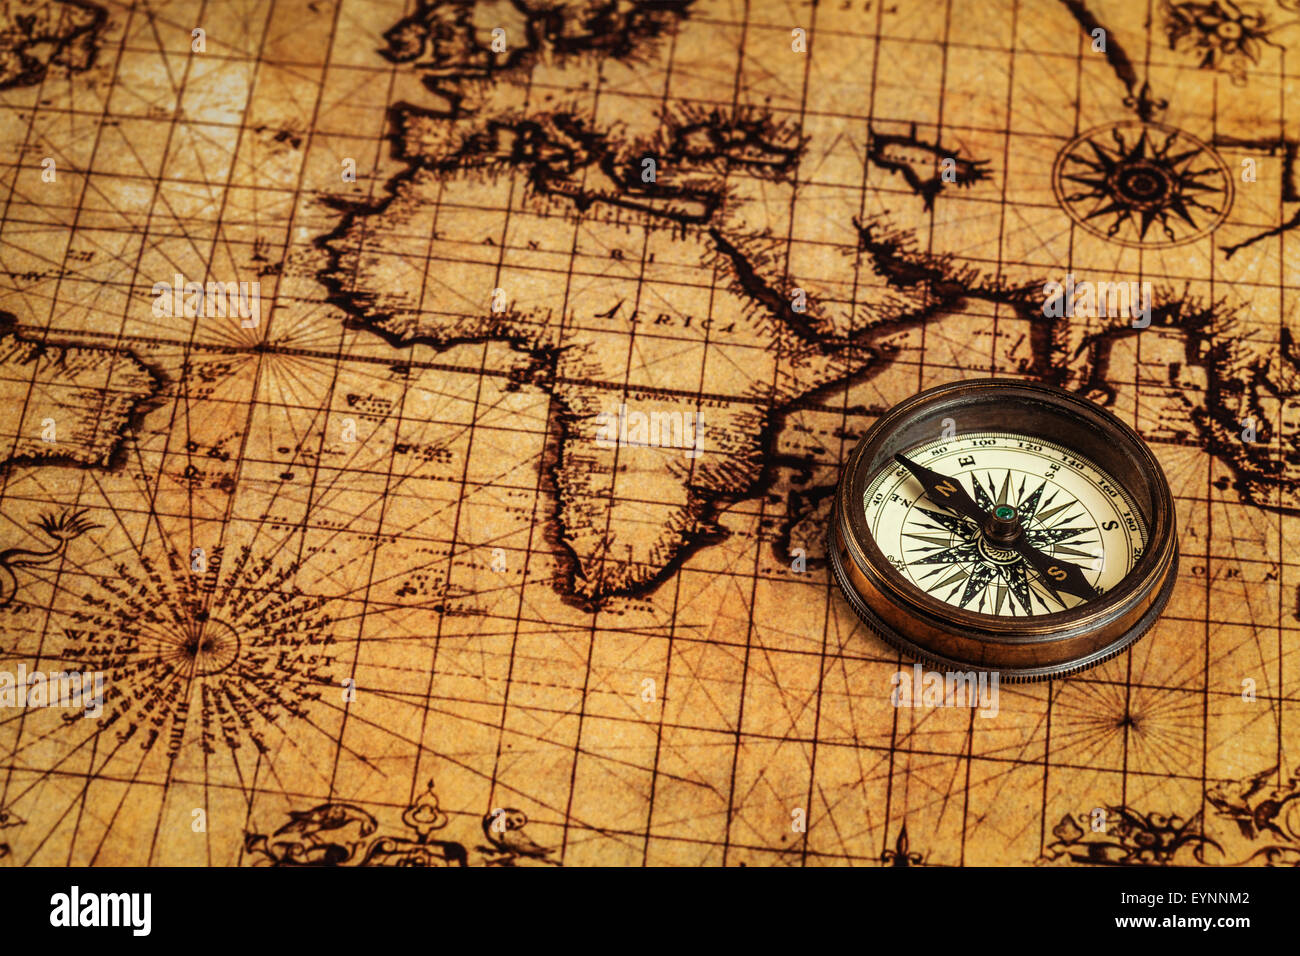 Compass Old Map Processing Antique Stock Photos Compass Old Map - Antiques us maps with compass